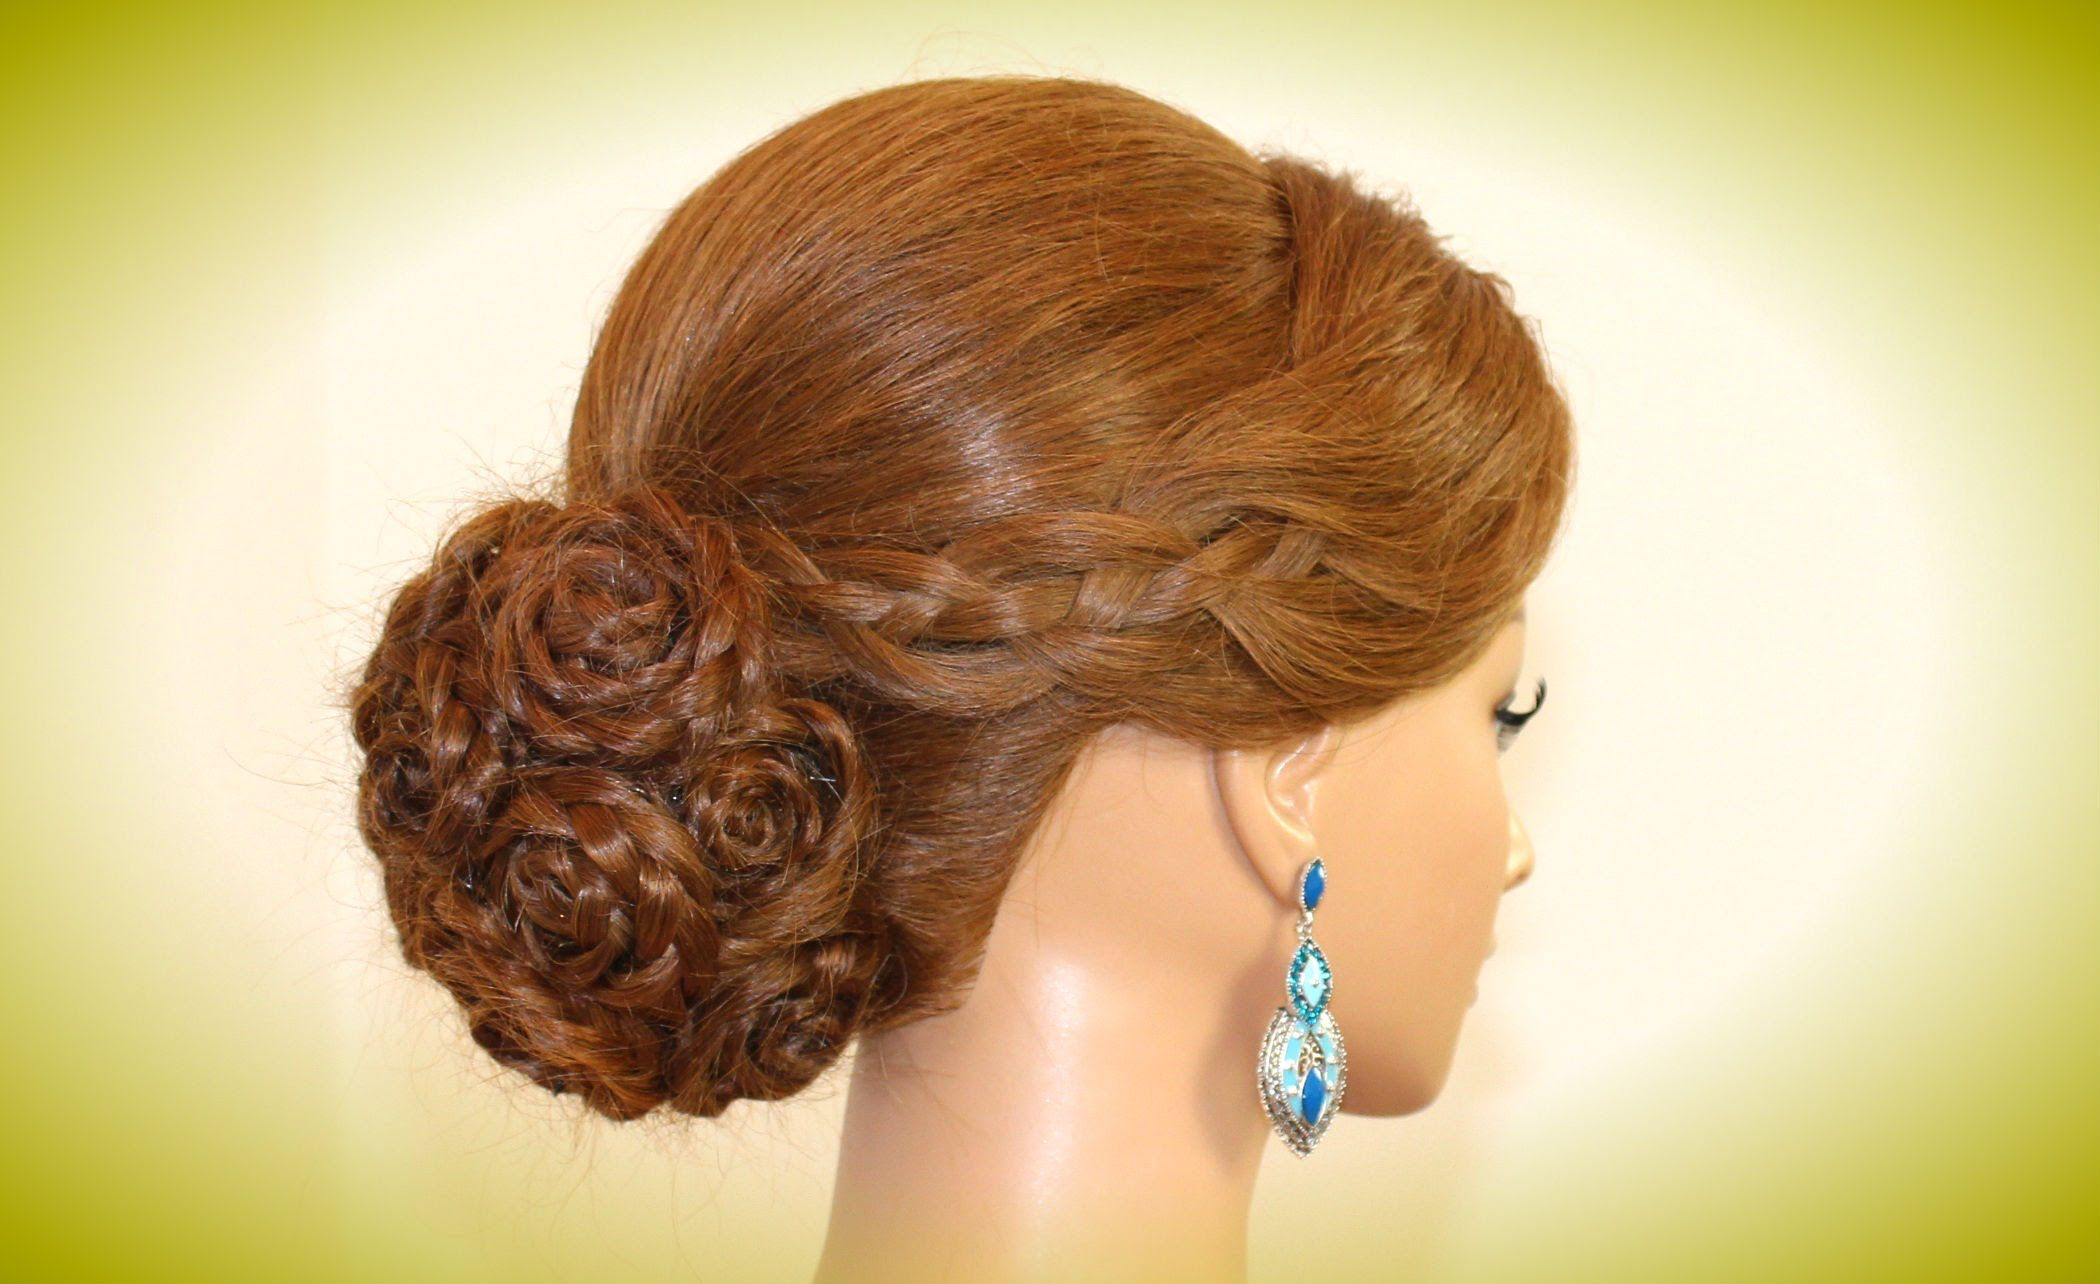 Wedding Hairstyles For Long Hair Bridal Prom Updo Rose Bun Hair Styles Long Hair Styles Wedding Hairstyles For Long Hair